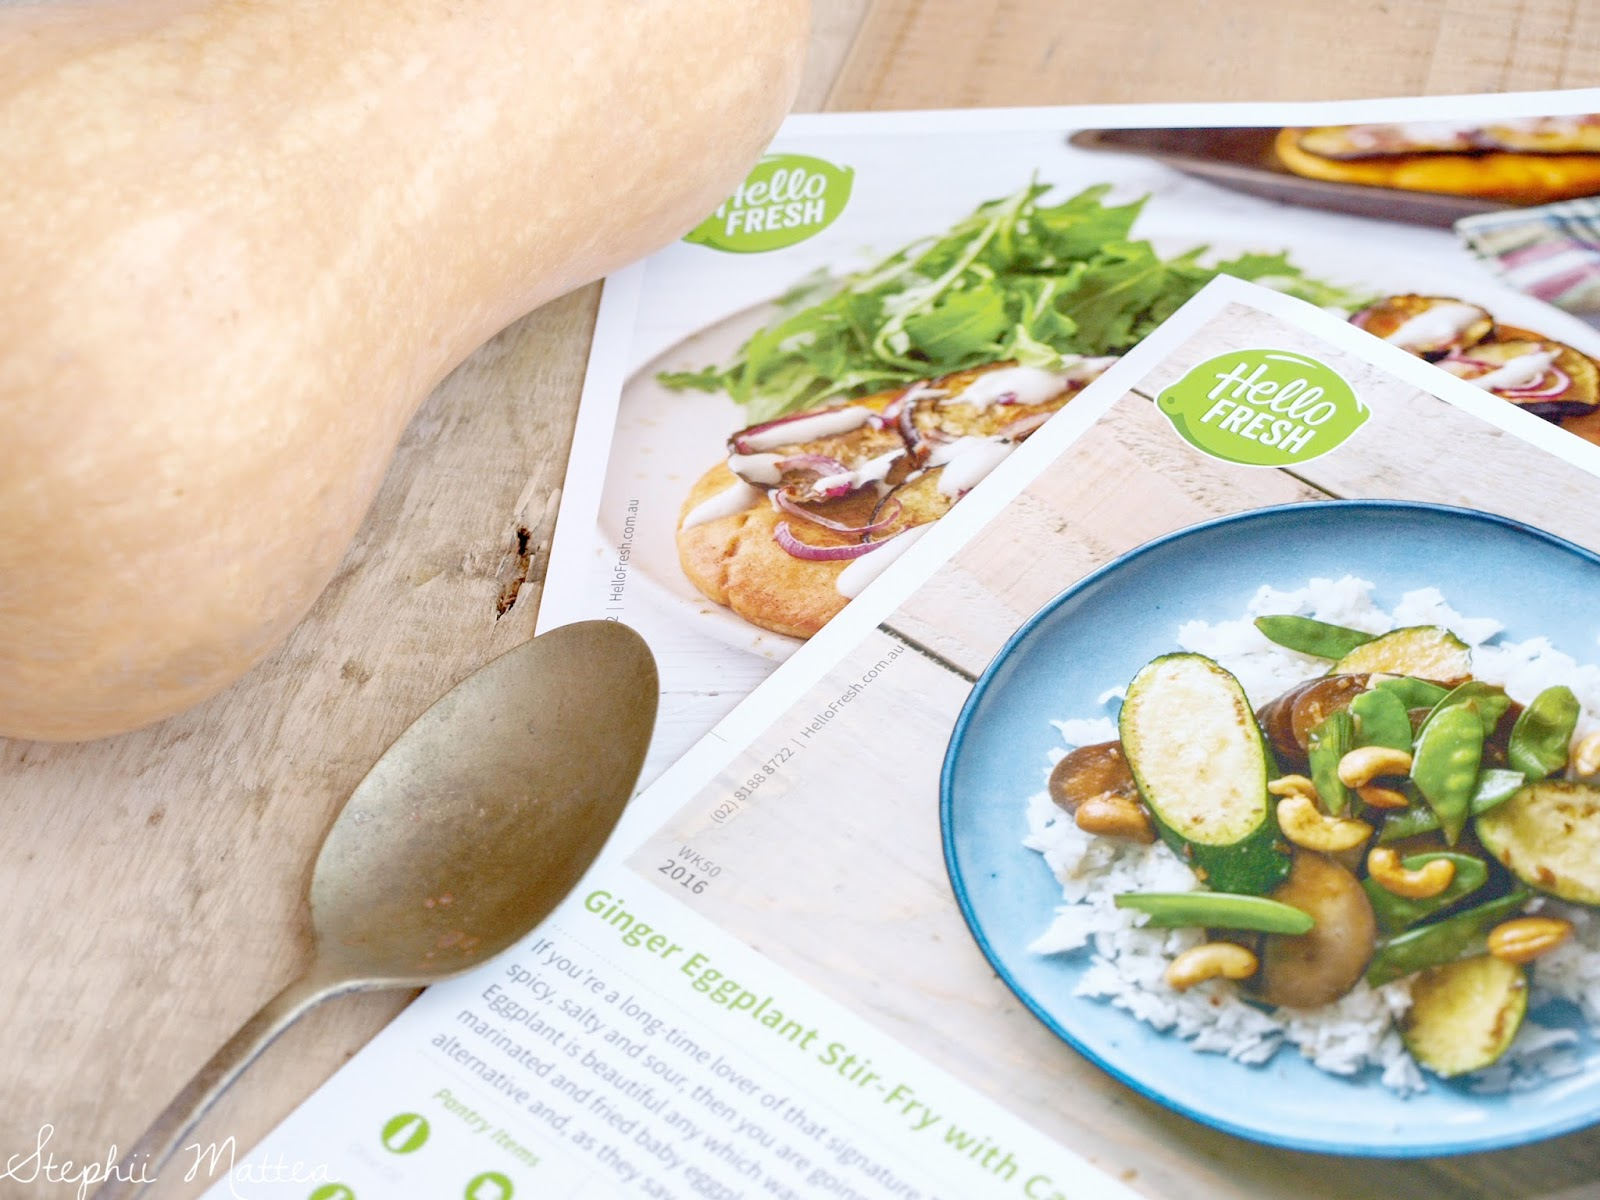 Meal Kit Delivery Service Hellofresh Specification Pdf